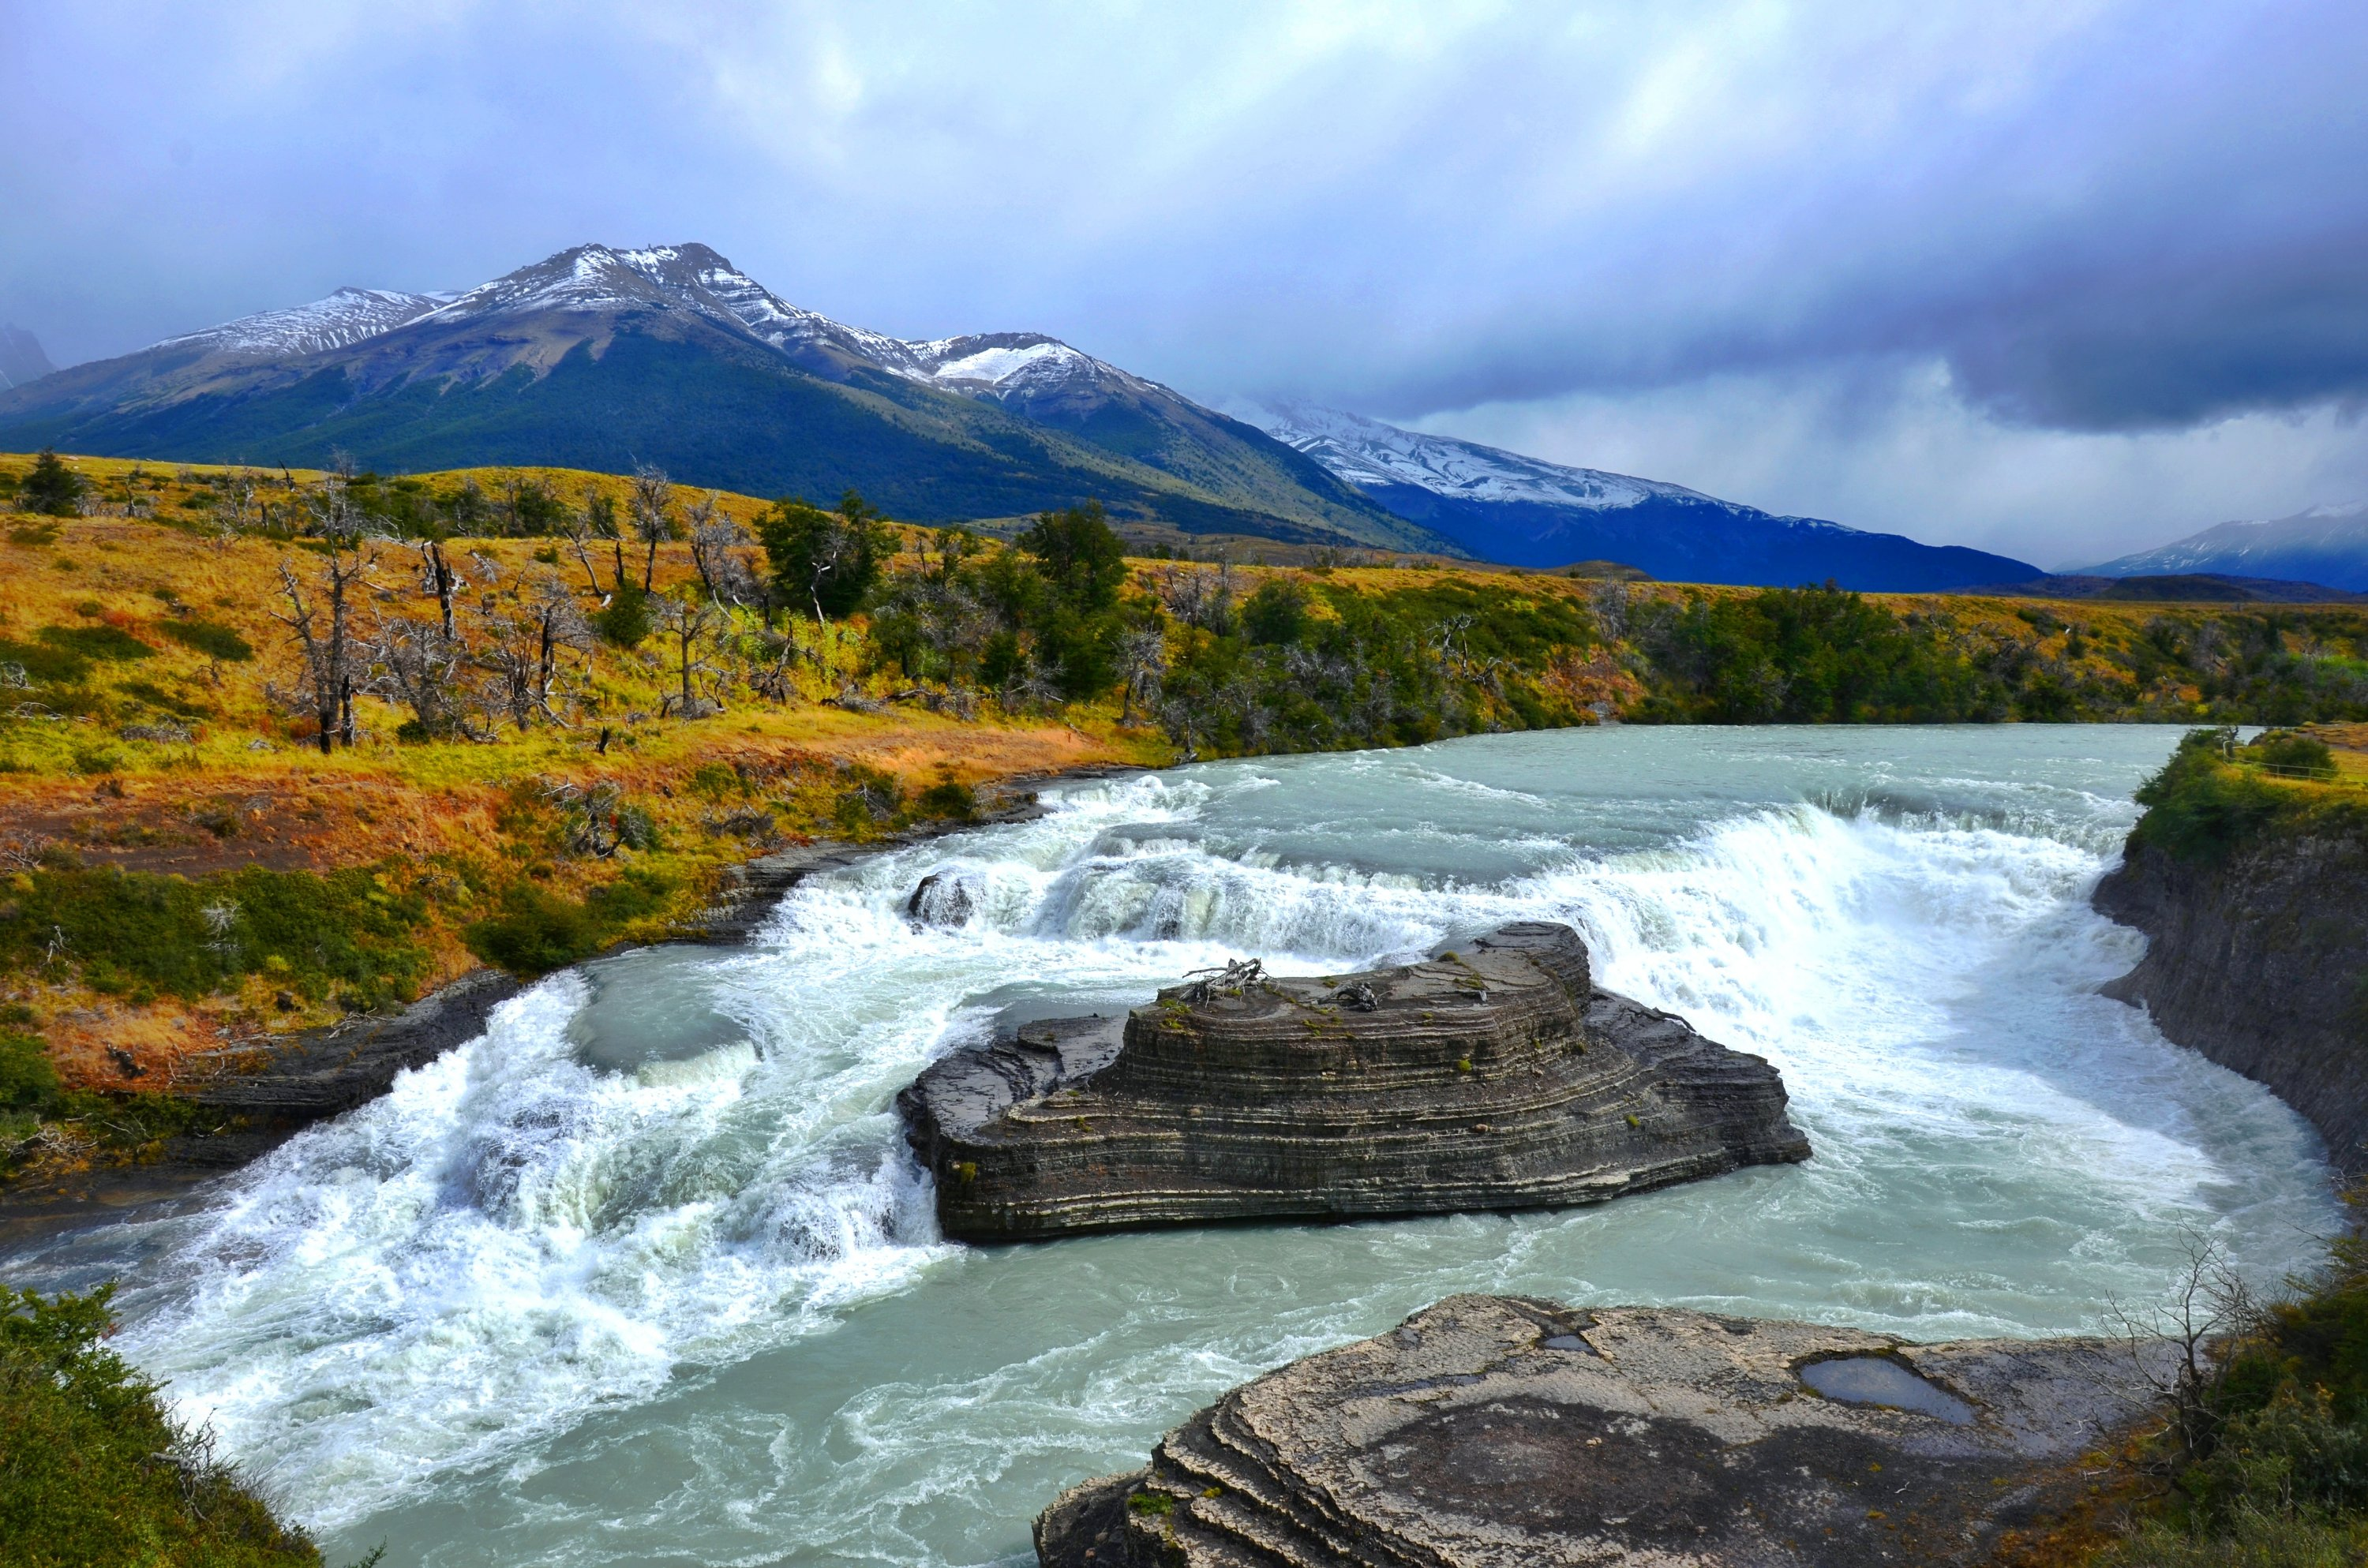 A Day Trip to Torres del Paine, Chile